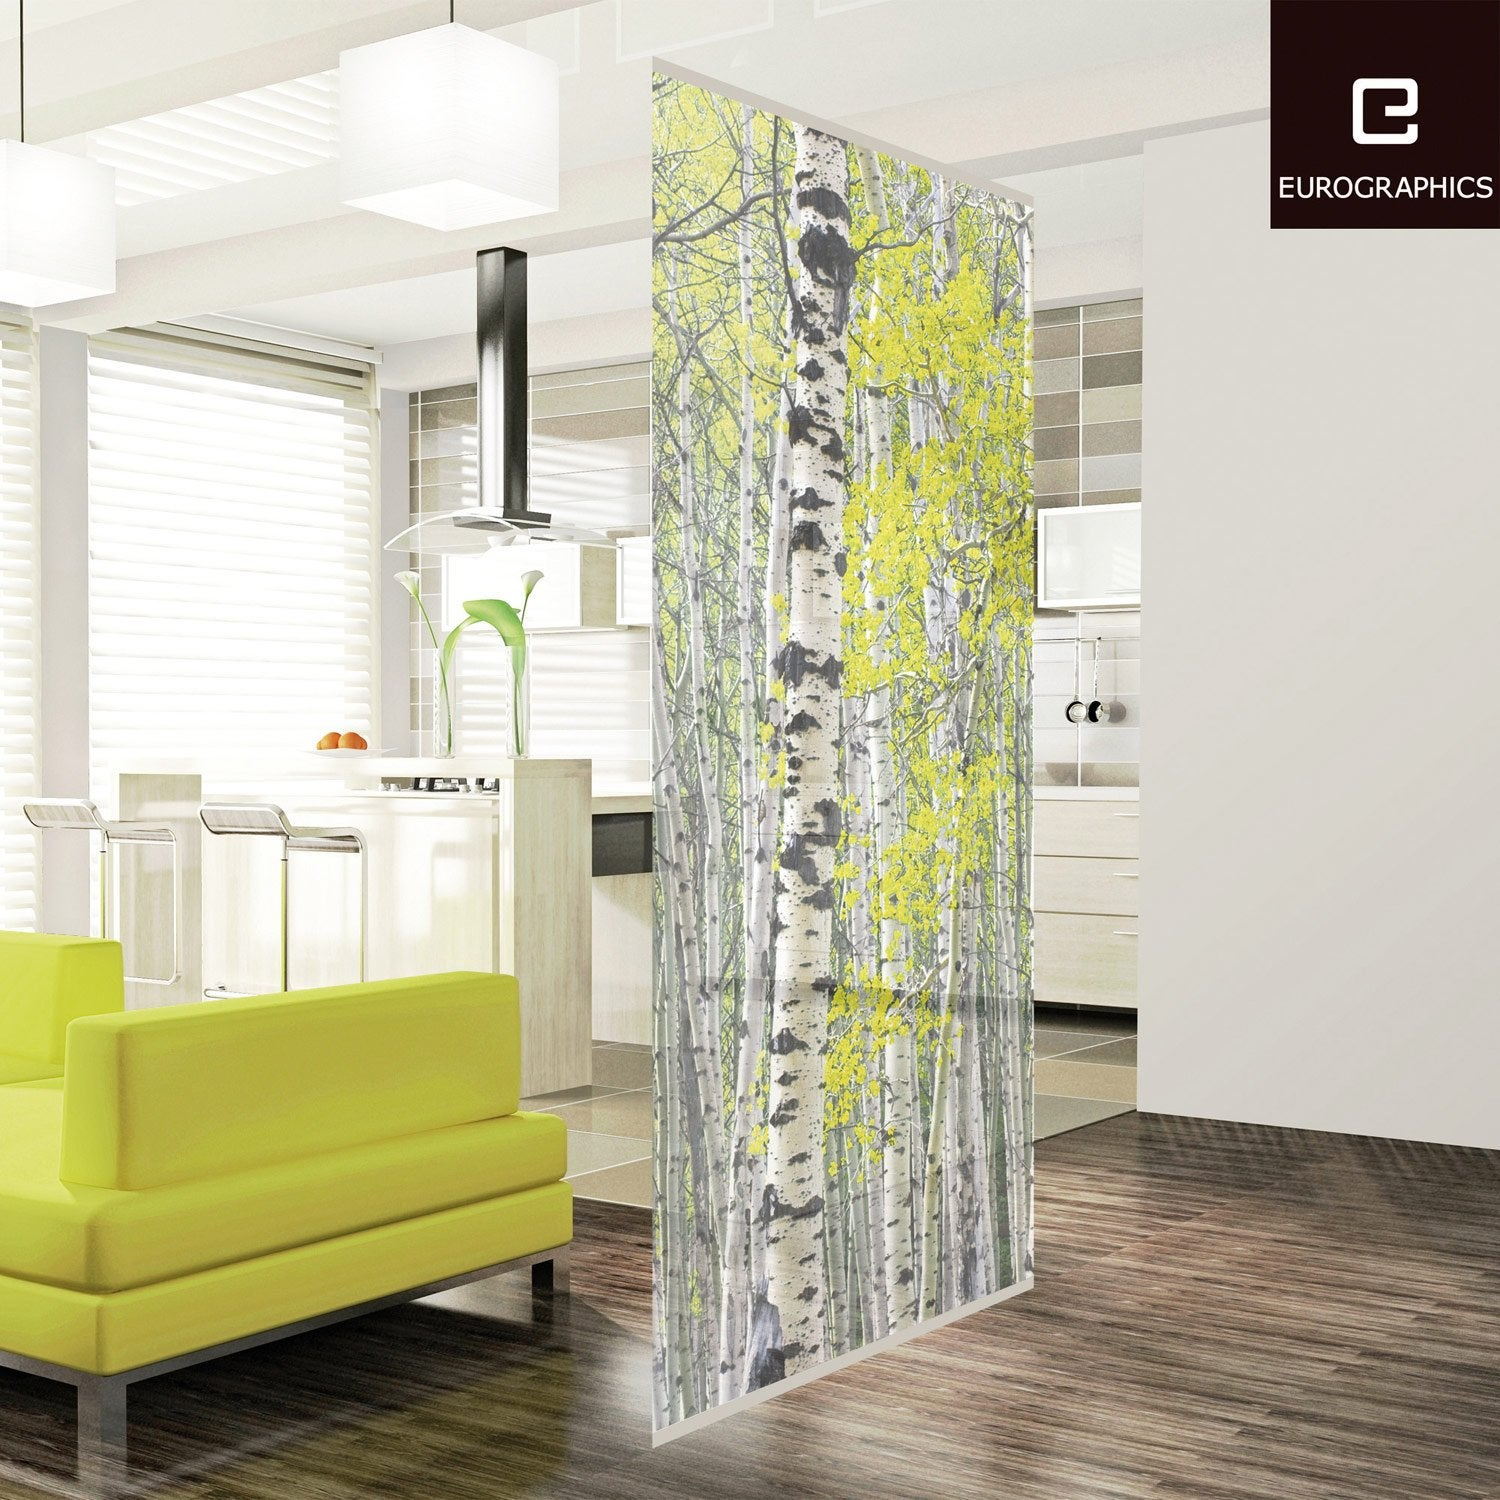 Cloison d corative silver birch forest deco home x cm leroy merlin - Cloison phonique leroy merlin ...